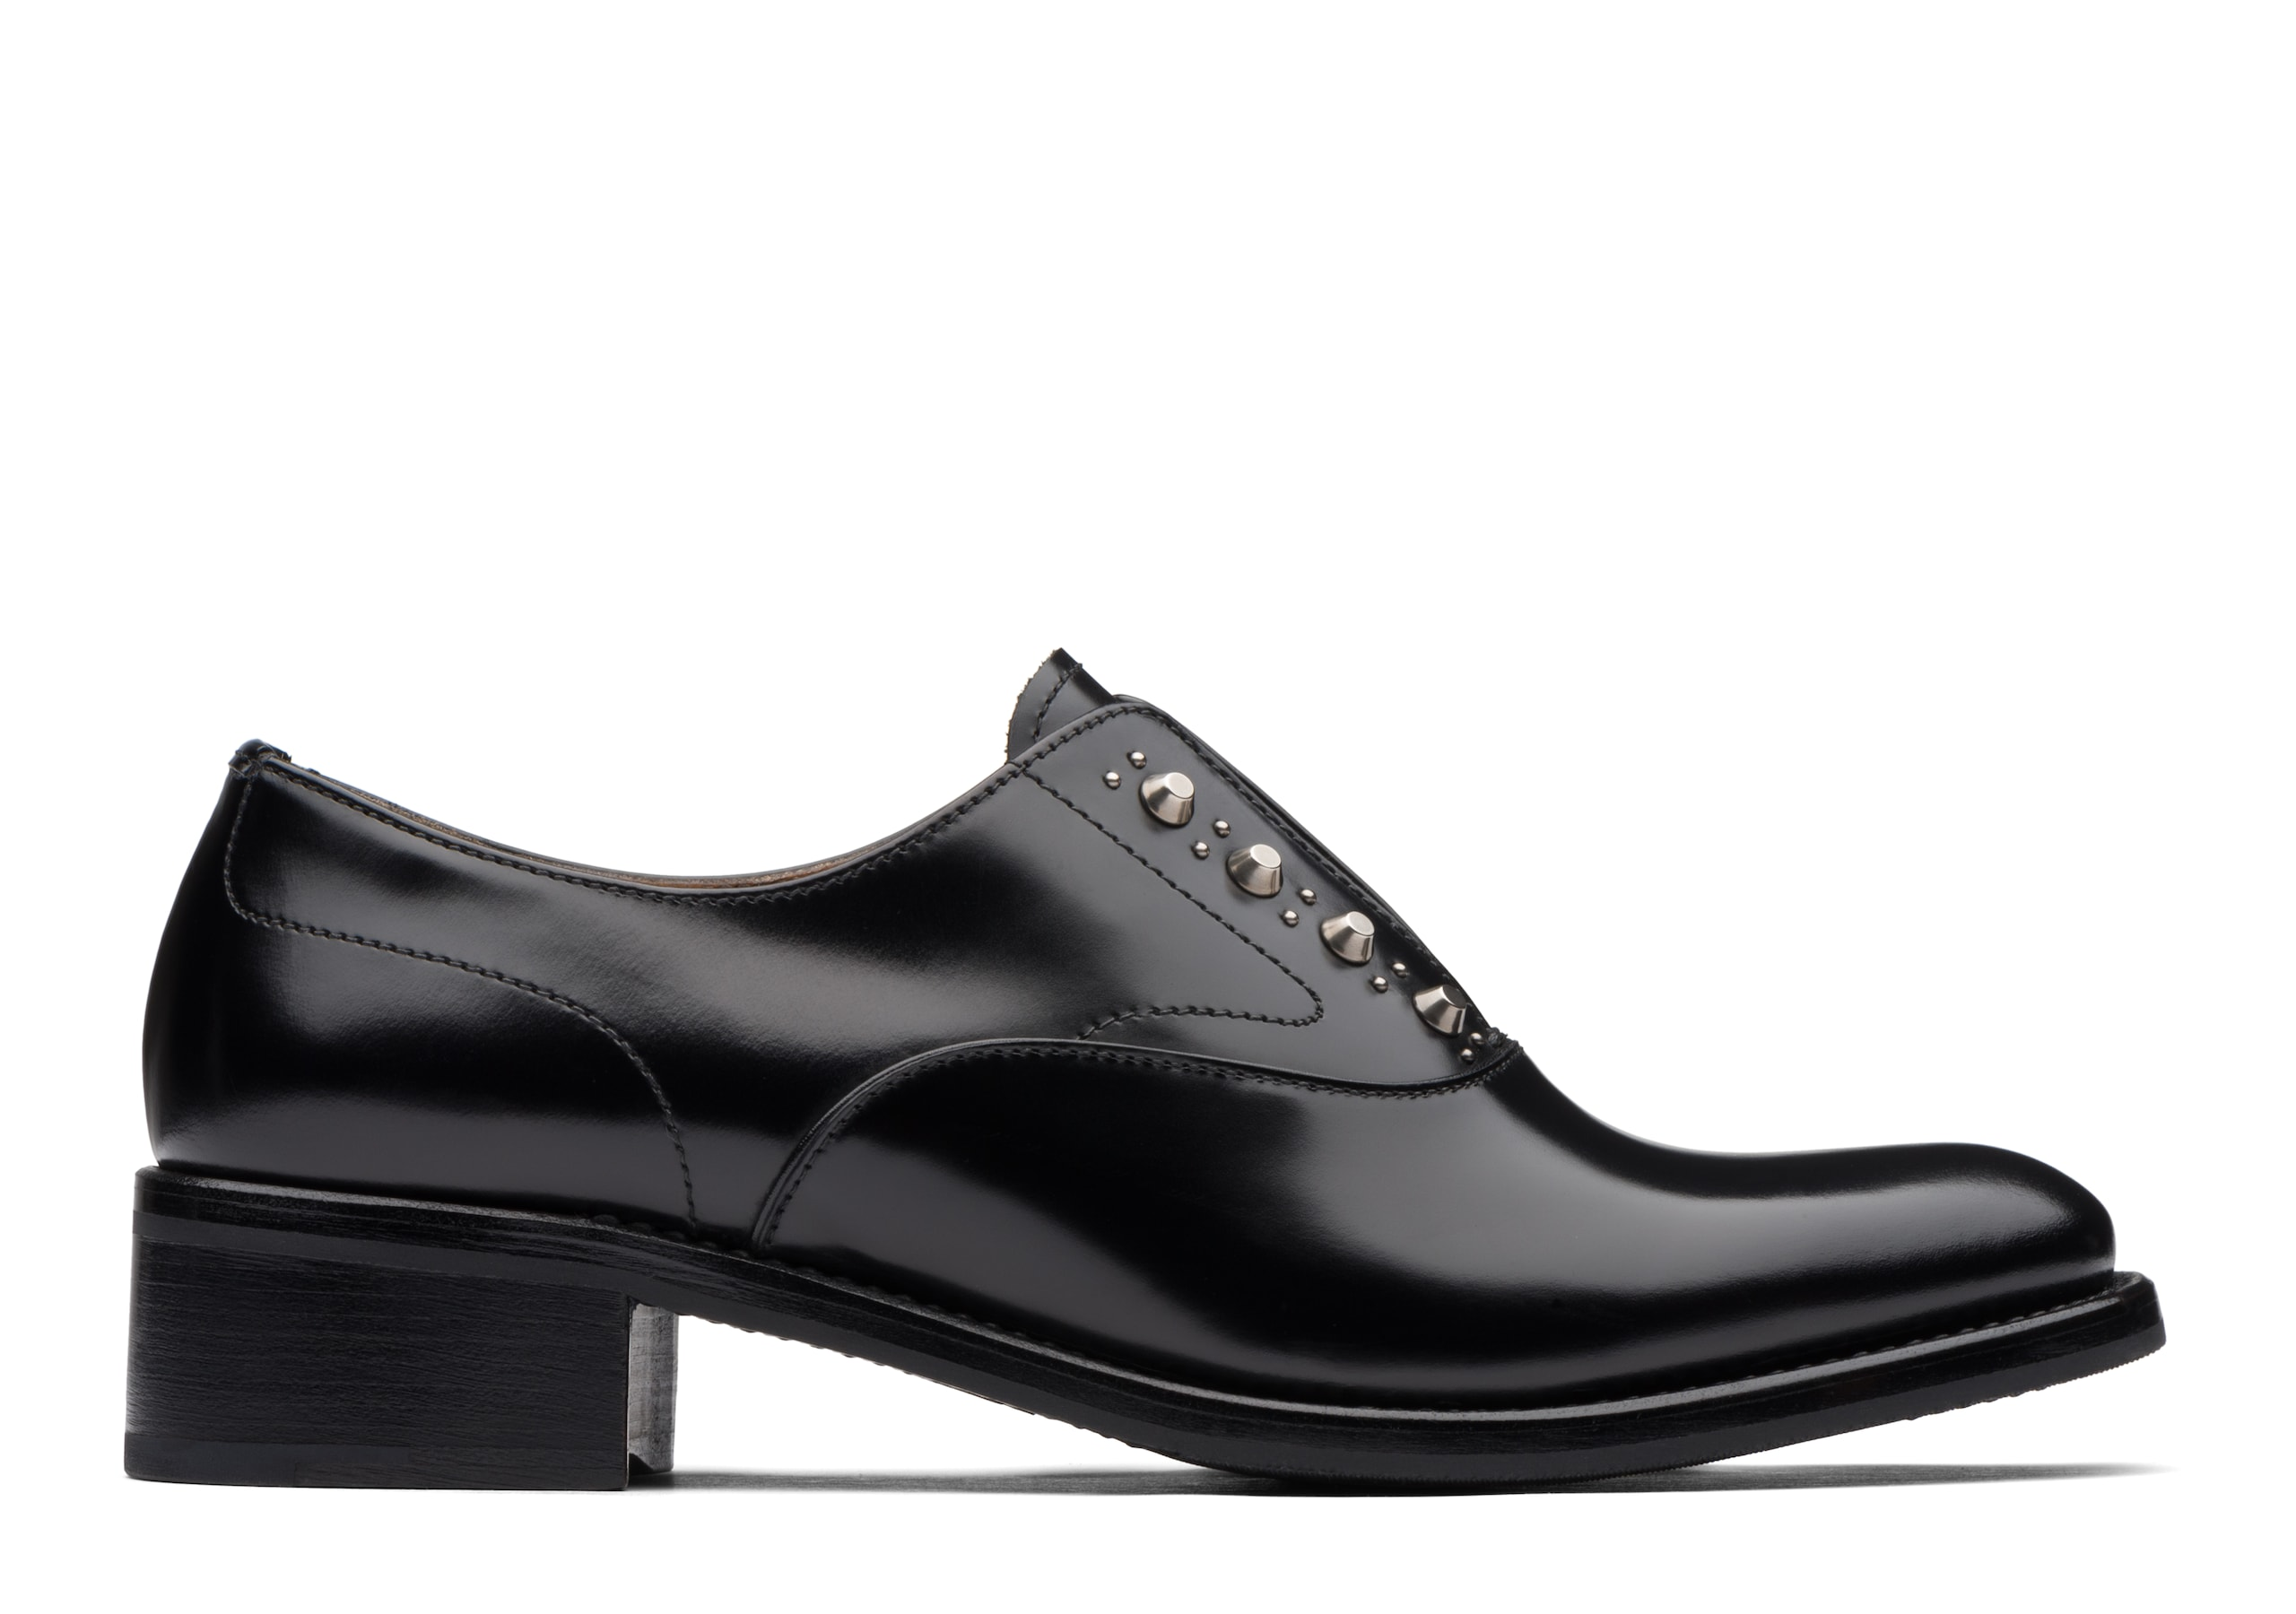 Issie r Church's Rois Calf Heeled Sip On Stud Black